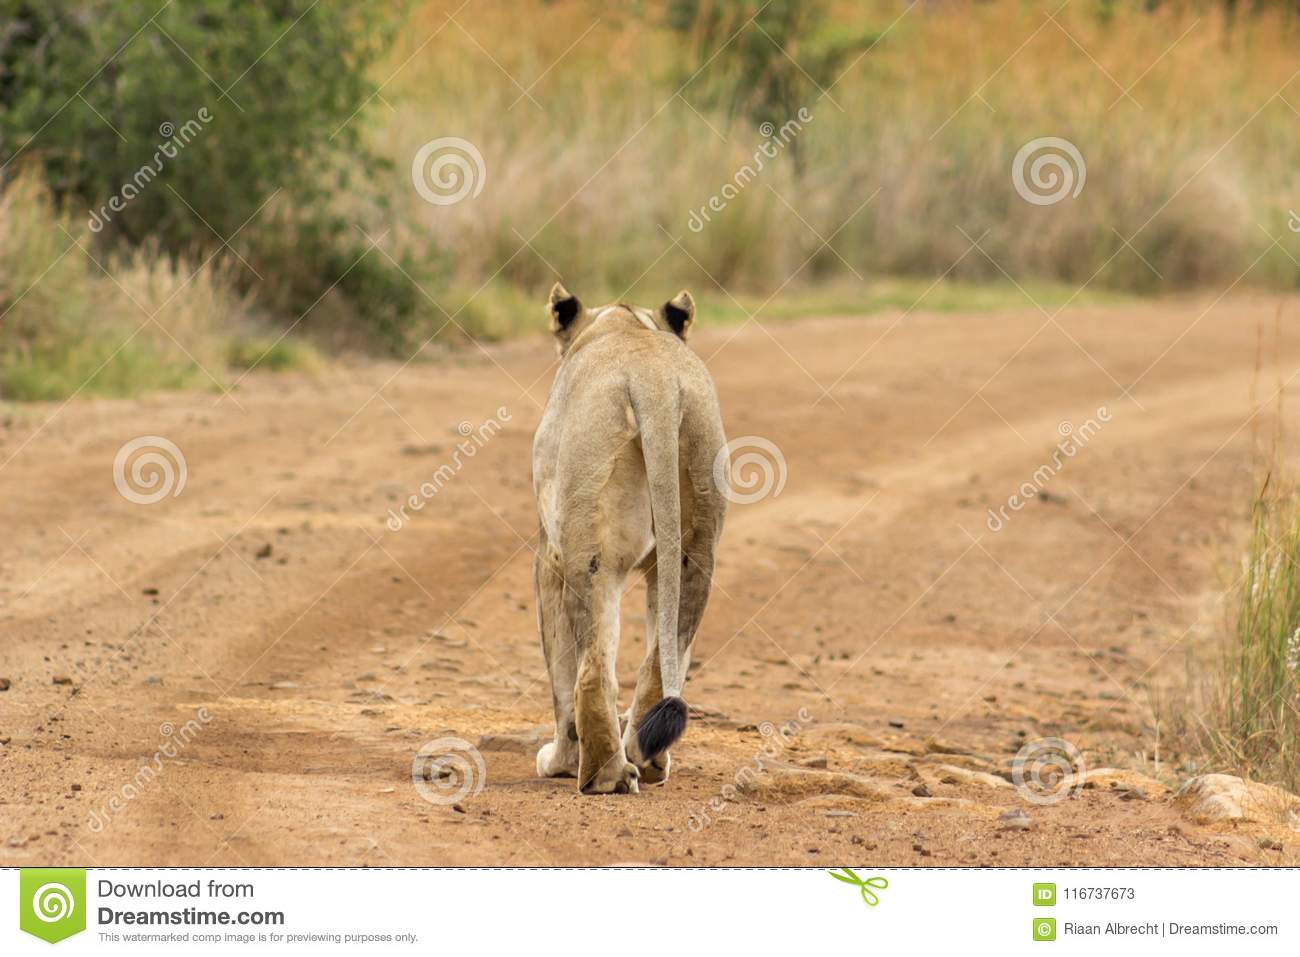 Lioness walking on a dirt road